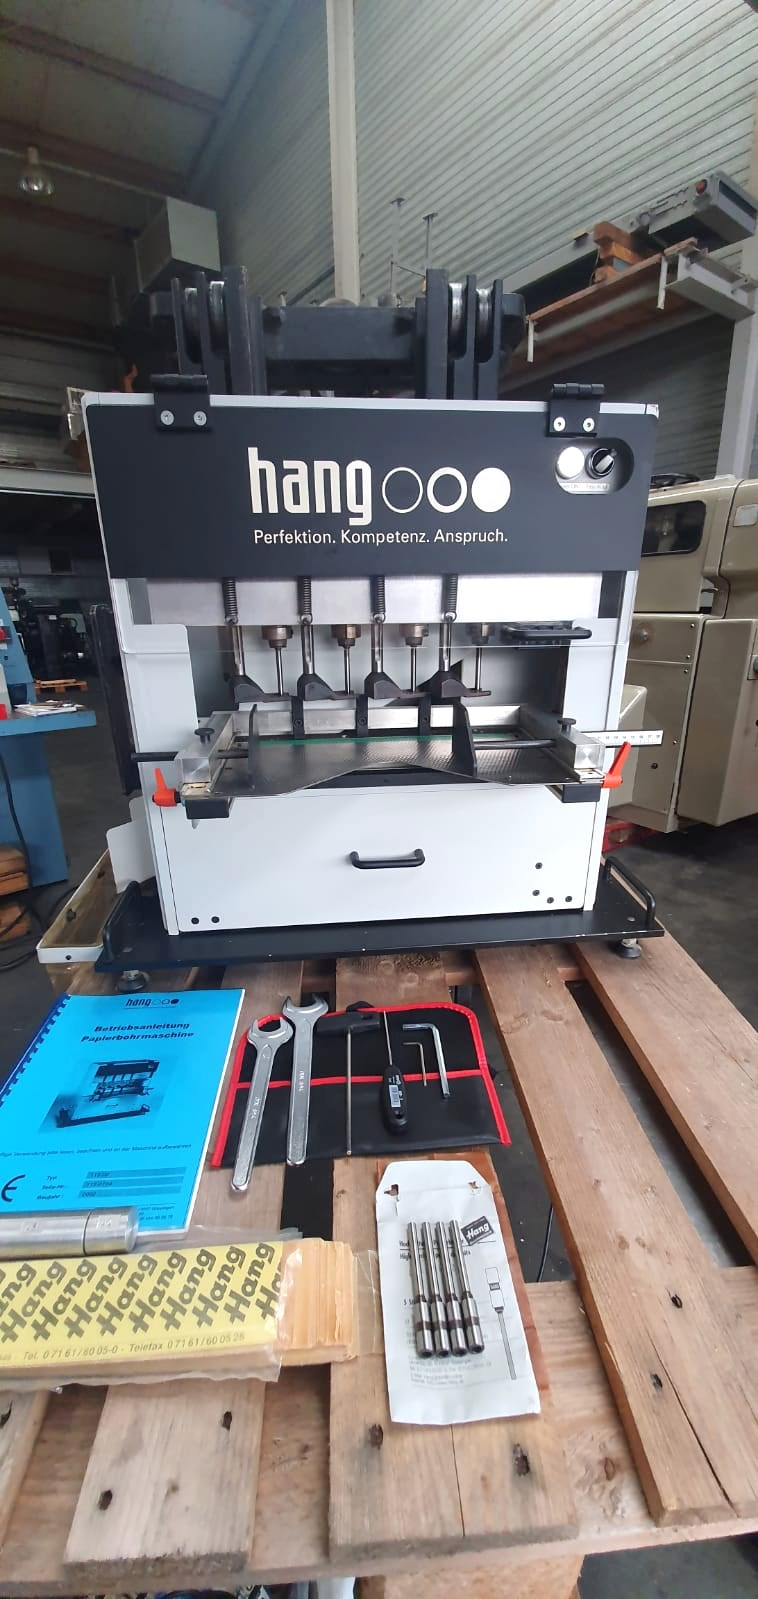 Show details for Hang 113-00 4-head drilling machine